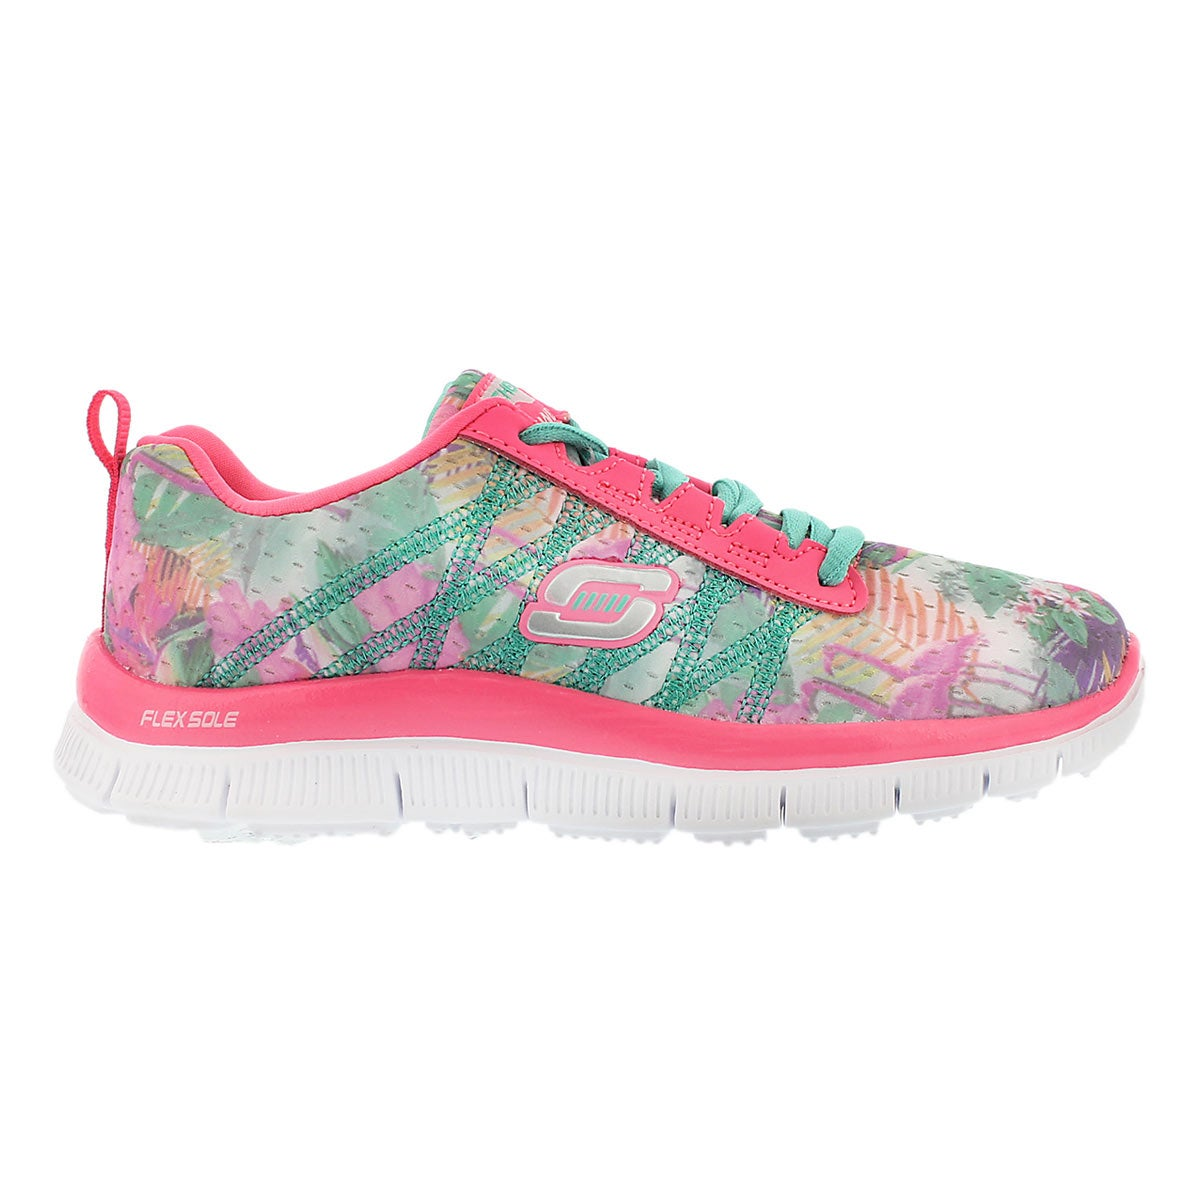 Grls Floral Bloom pink/mlti running shoe